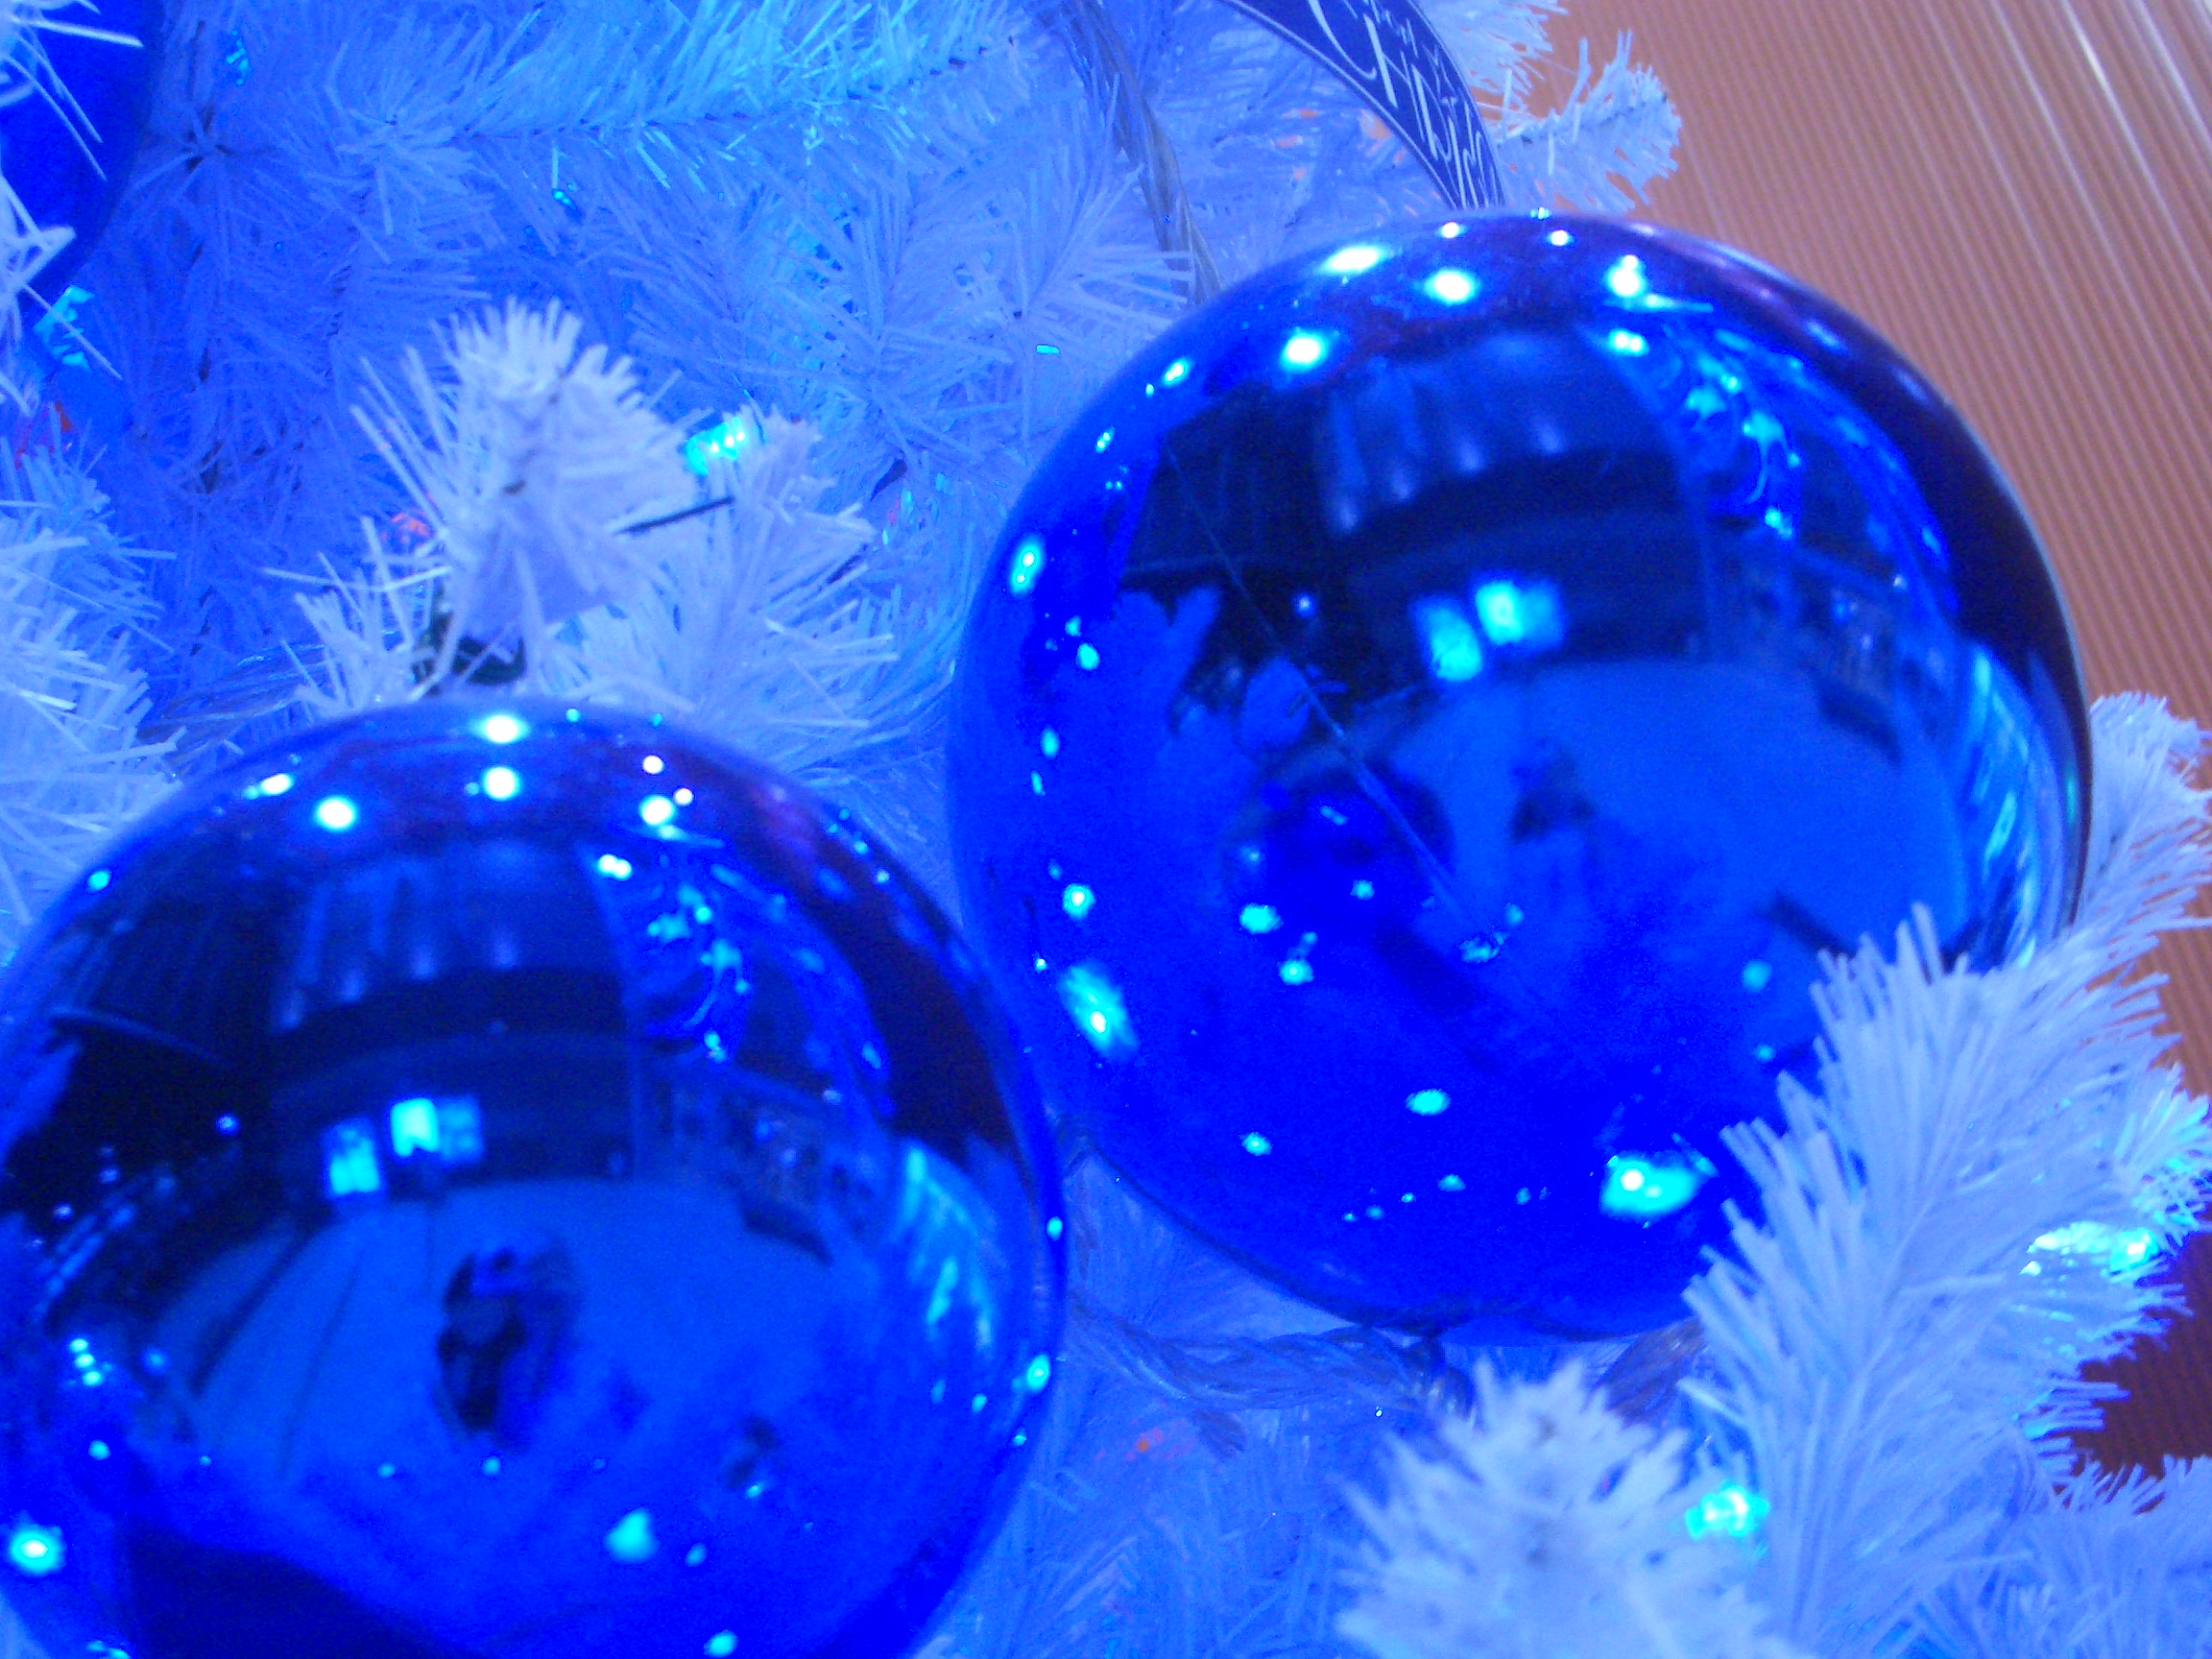 A Blue Christmas Service: If You're Hurting at Christmas